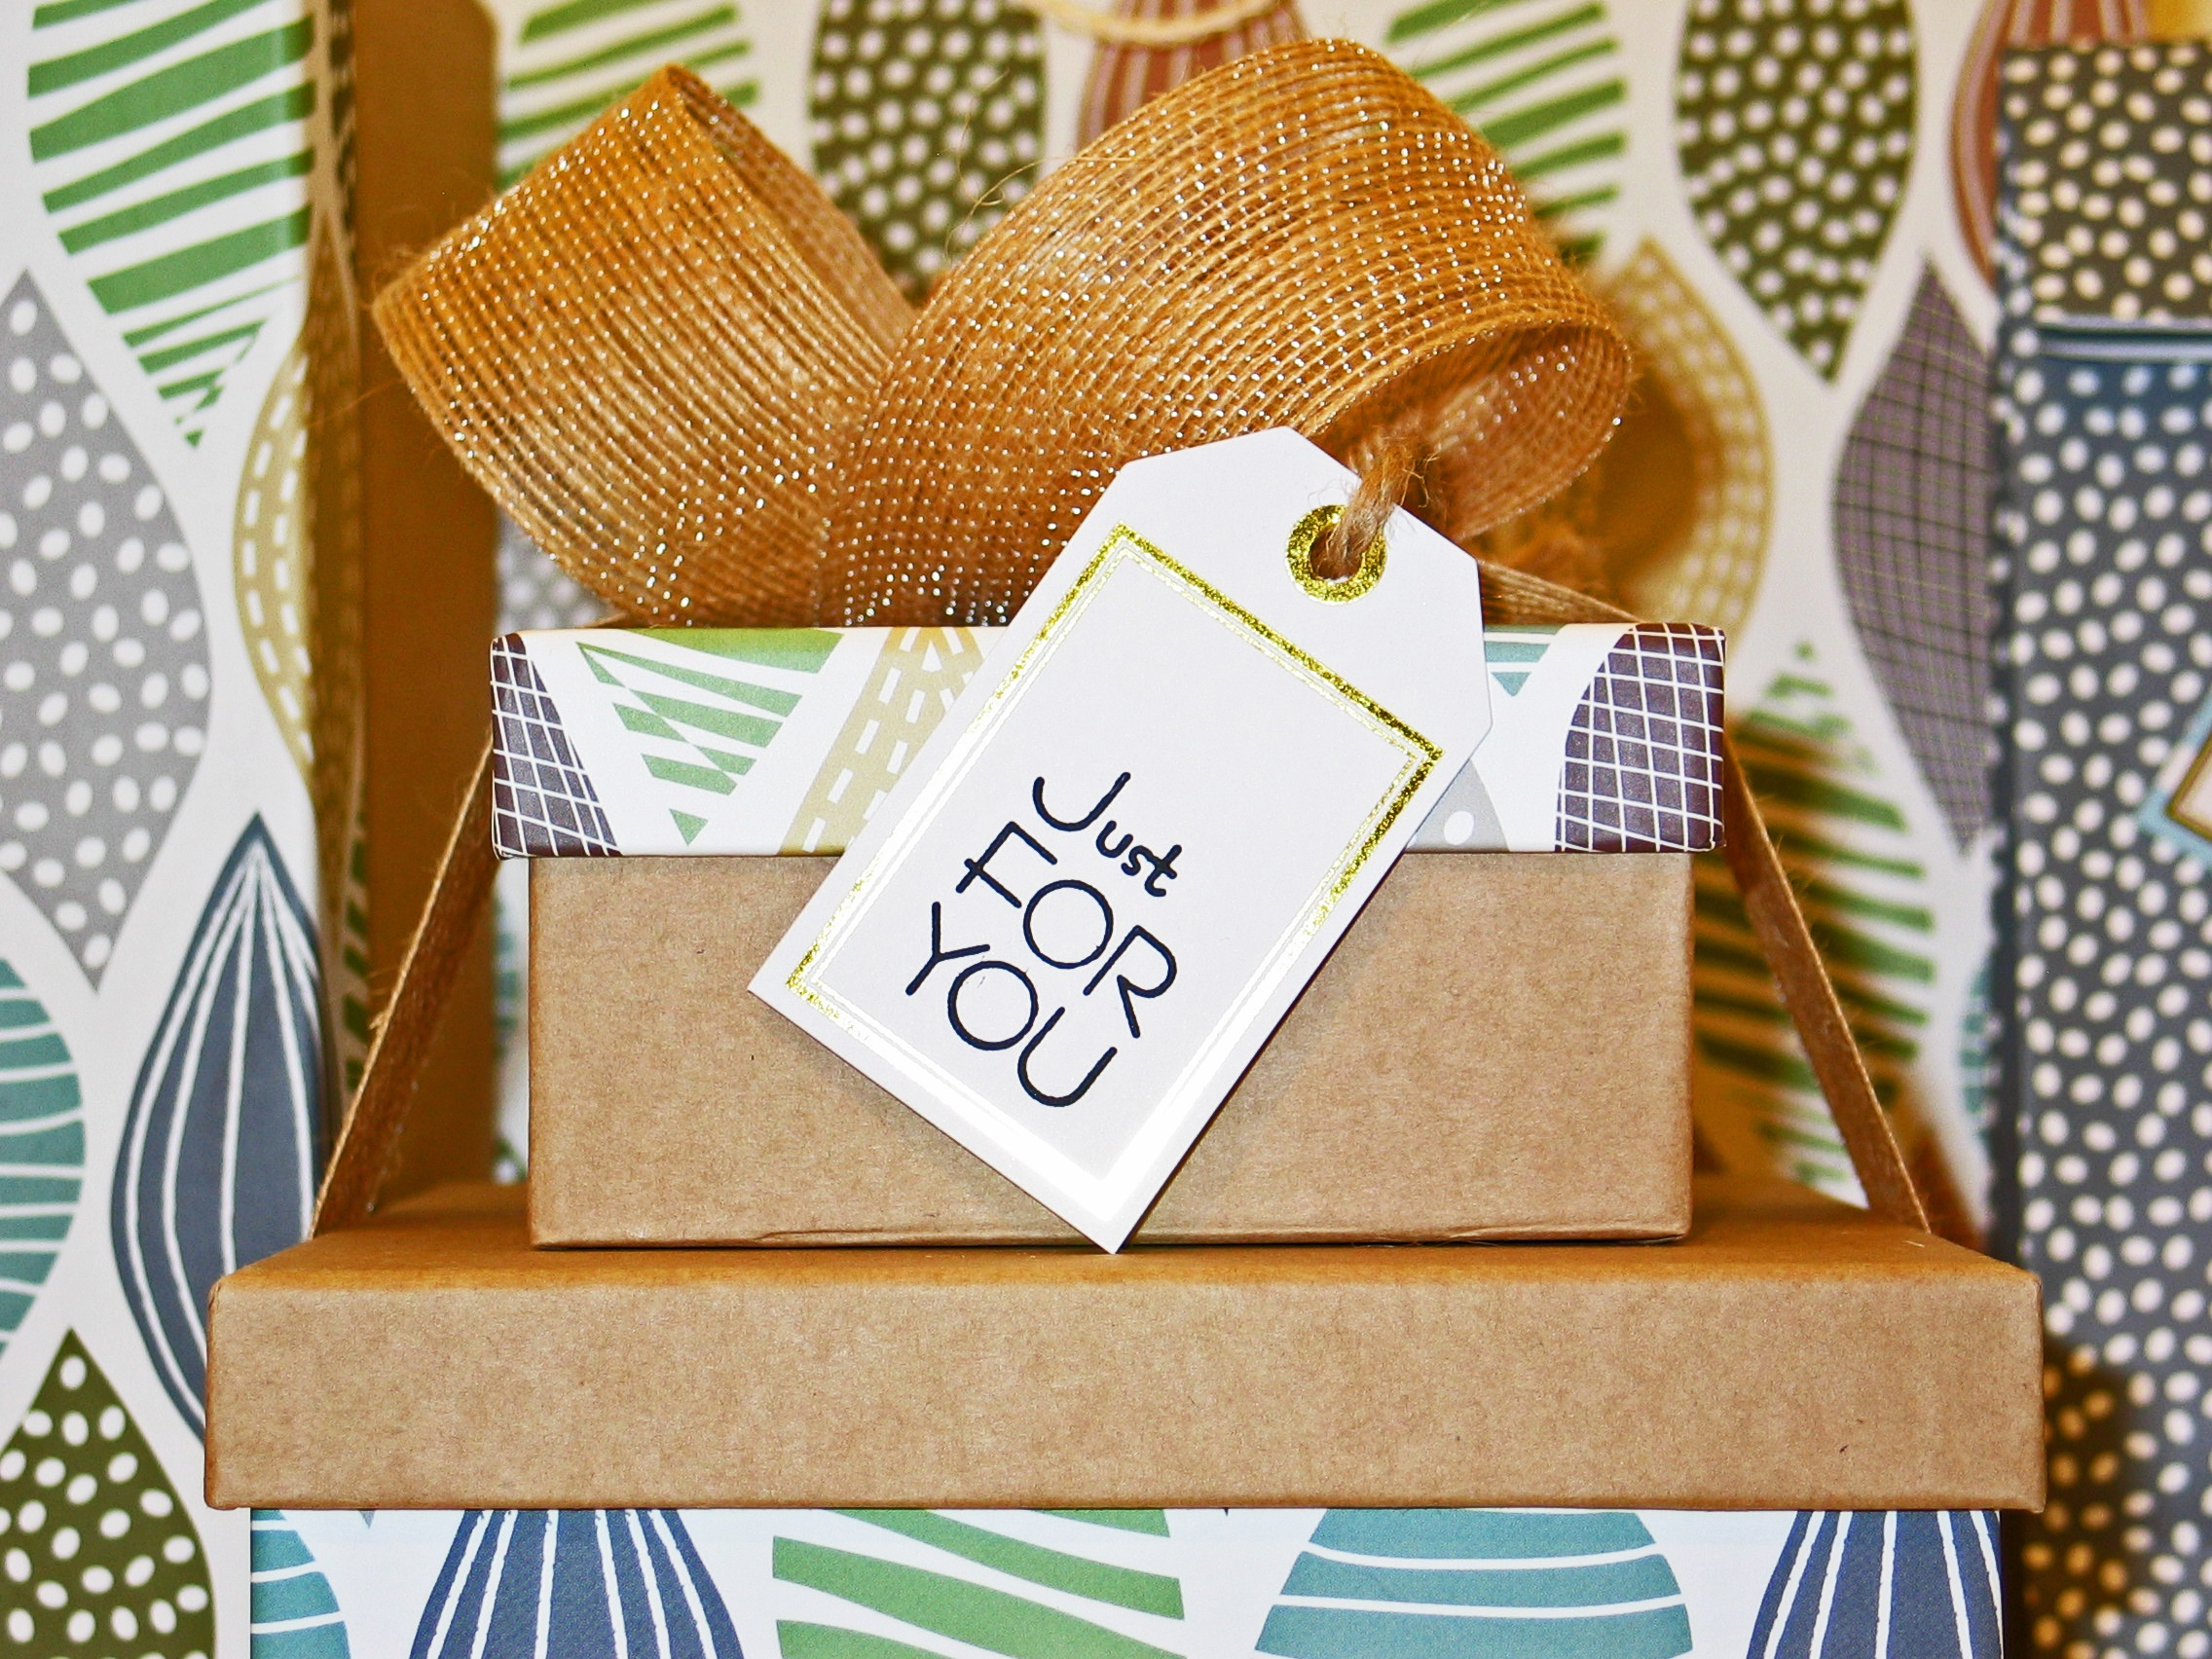 How to Start Up a Subscription Box Company